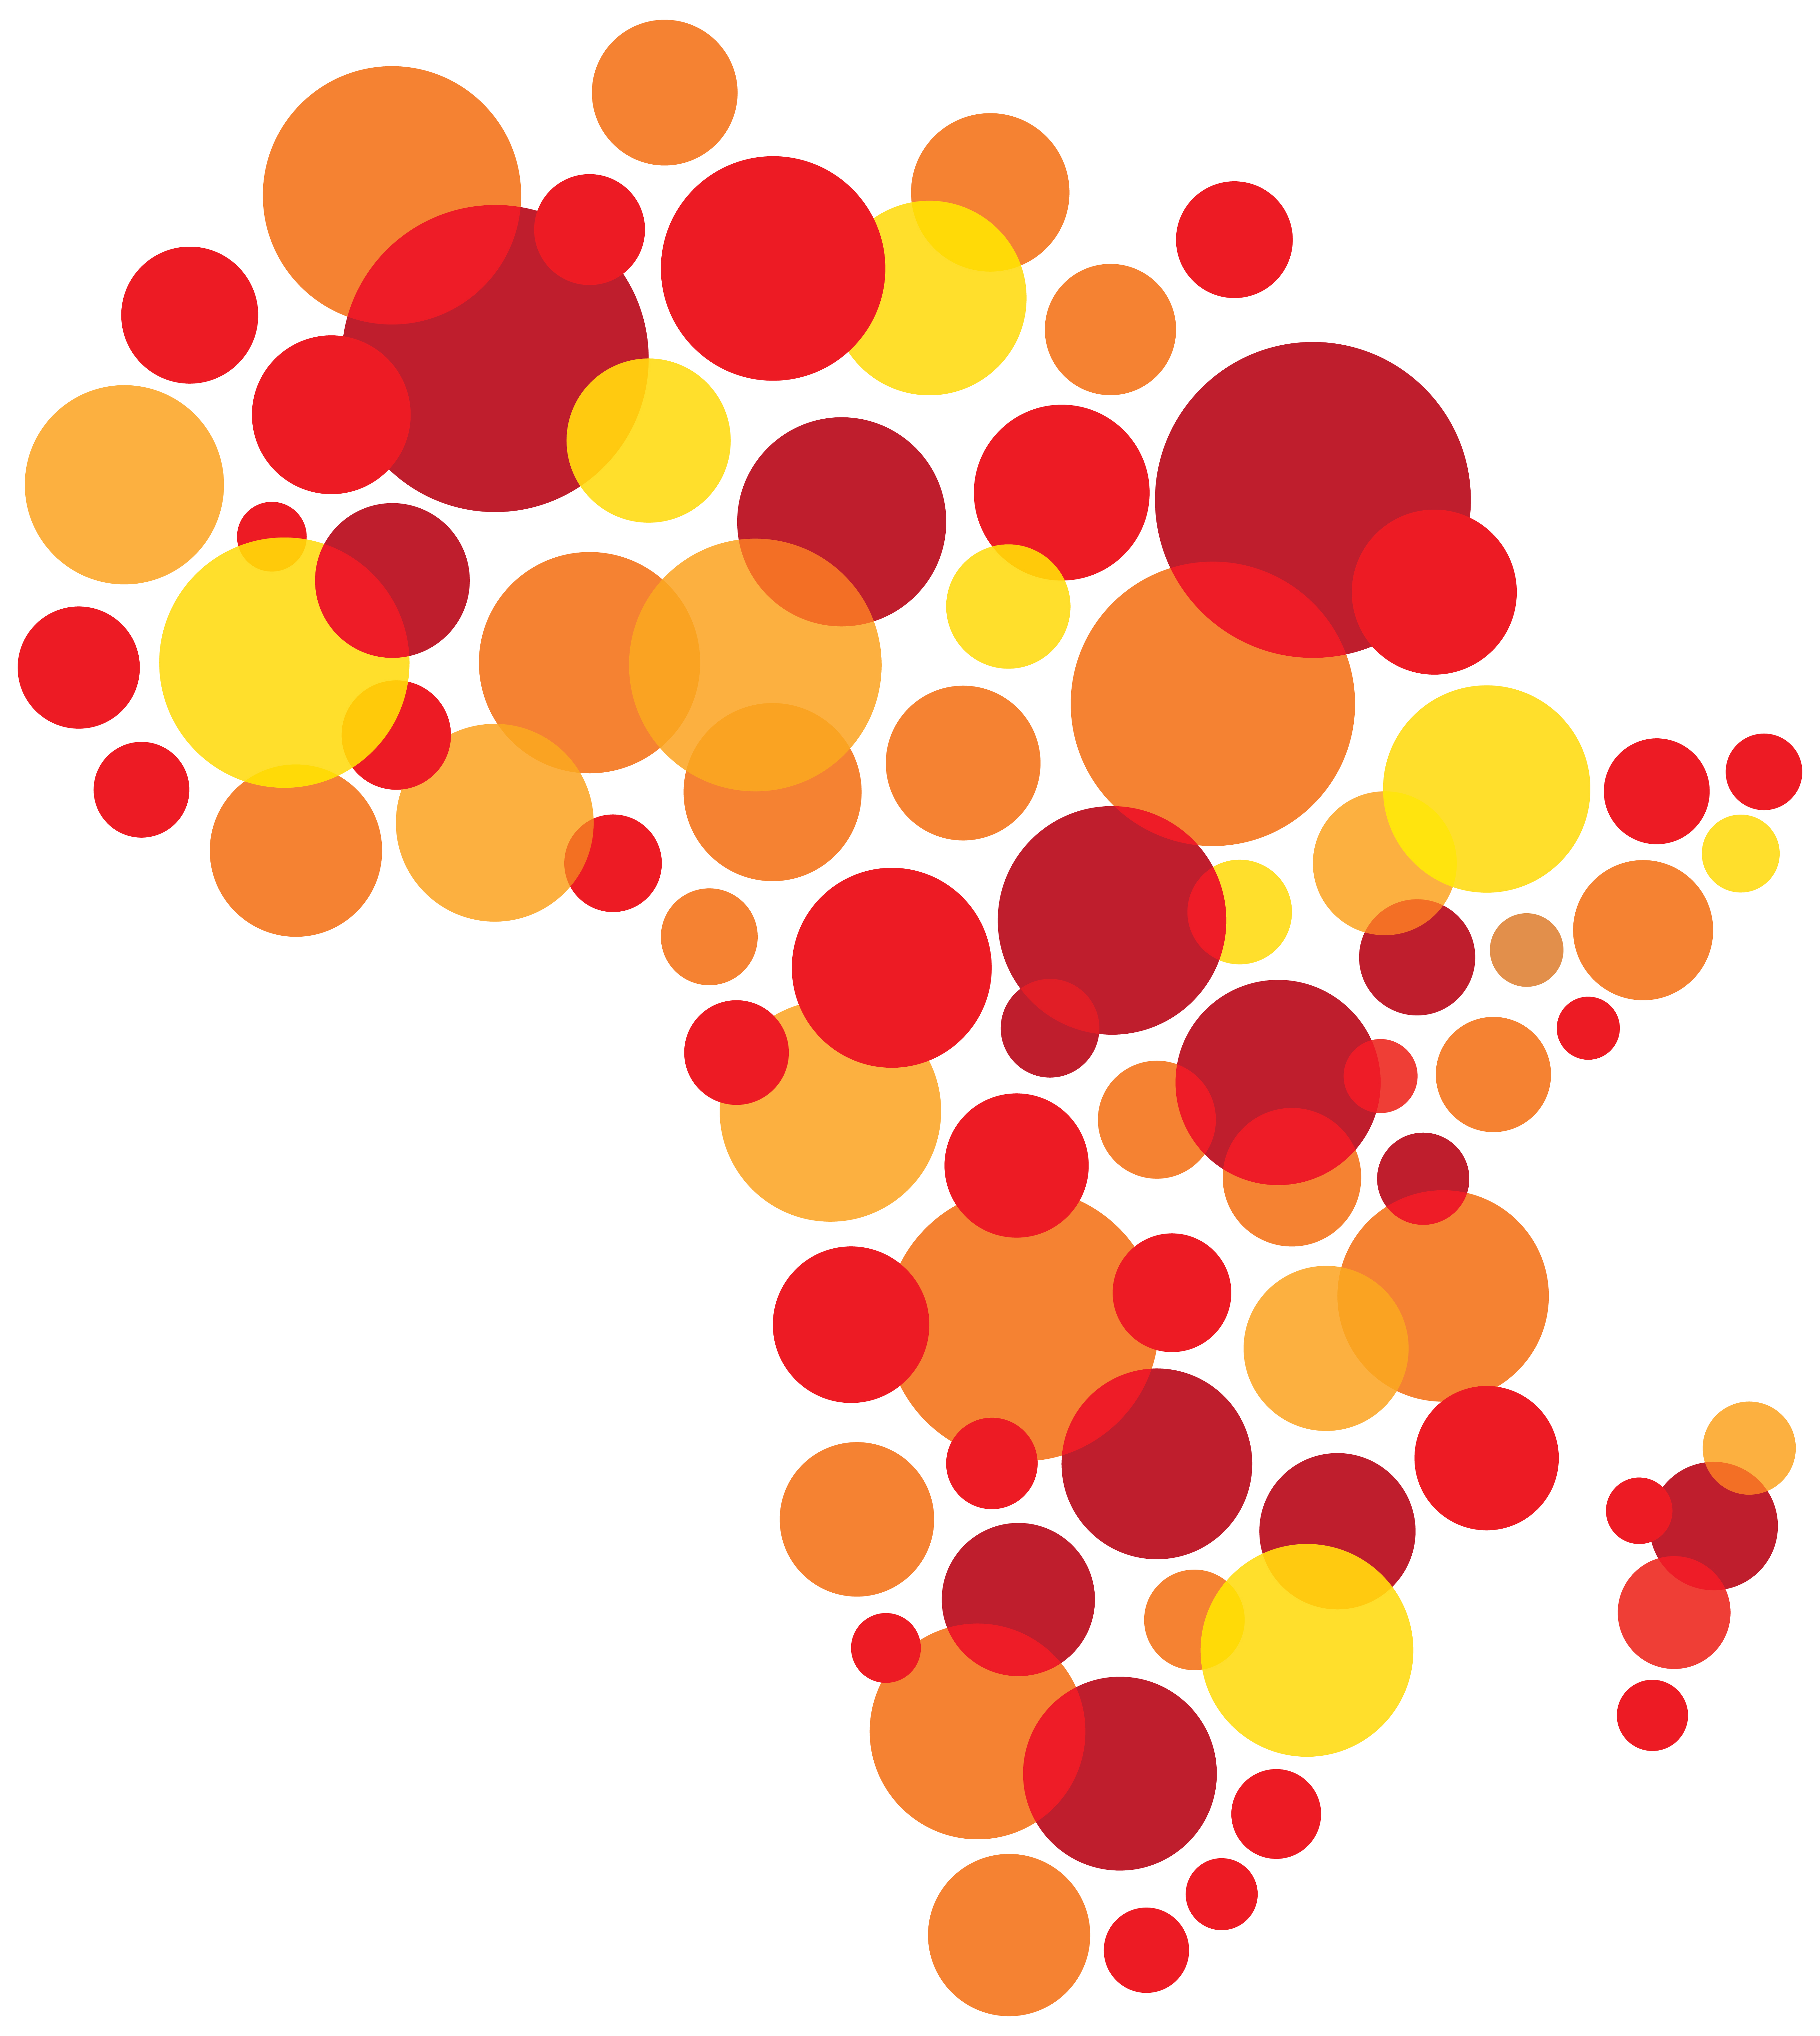 MasterCard African Cities Growth Index